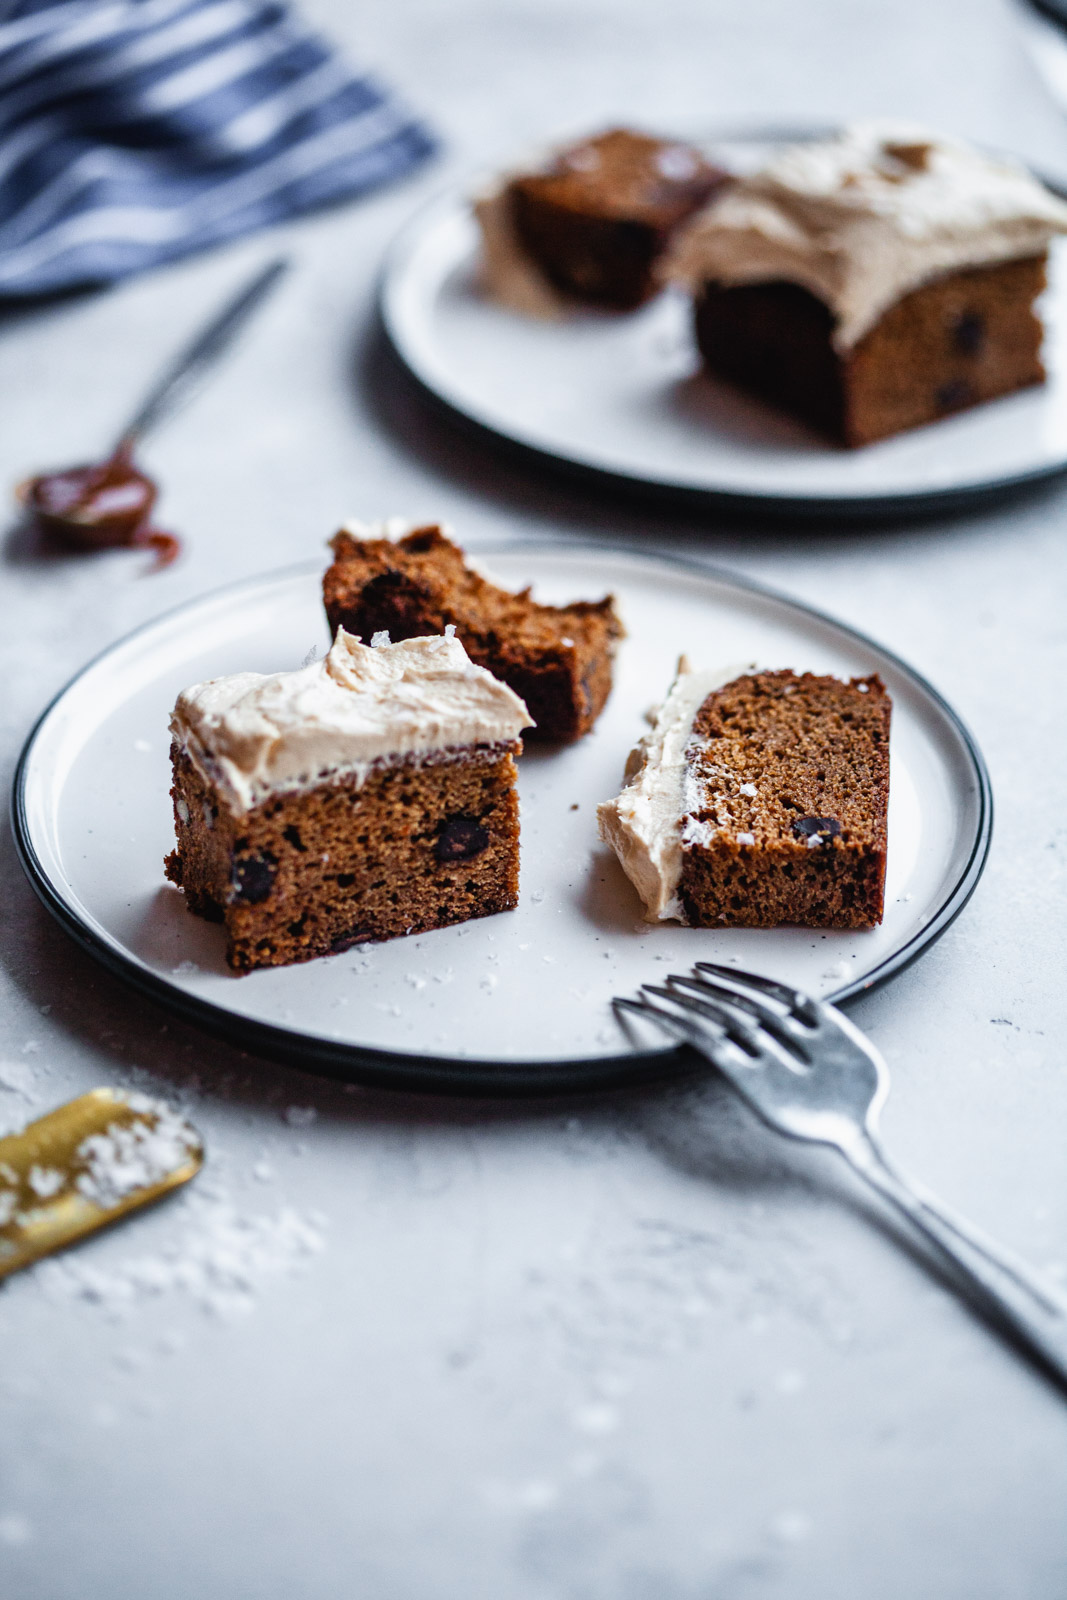 Sweet Potato Spice Cake With A Caramel Frosting